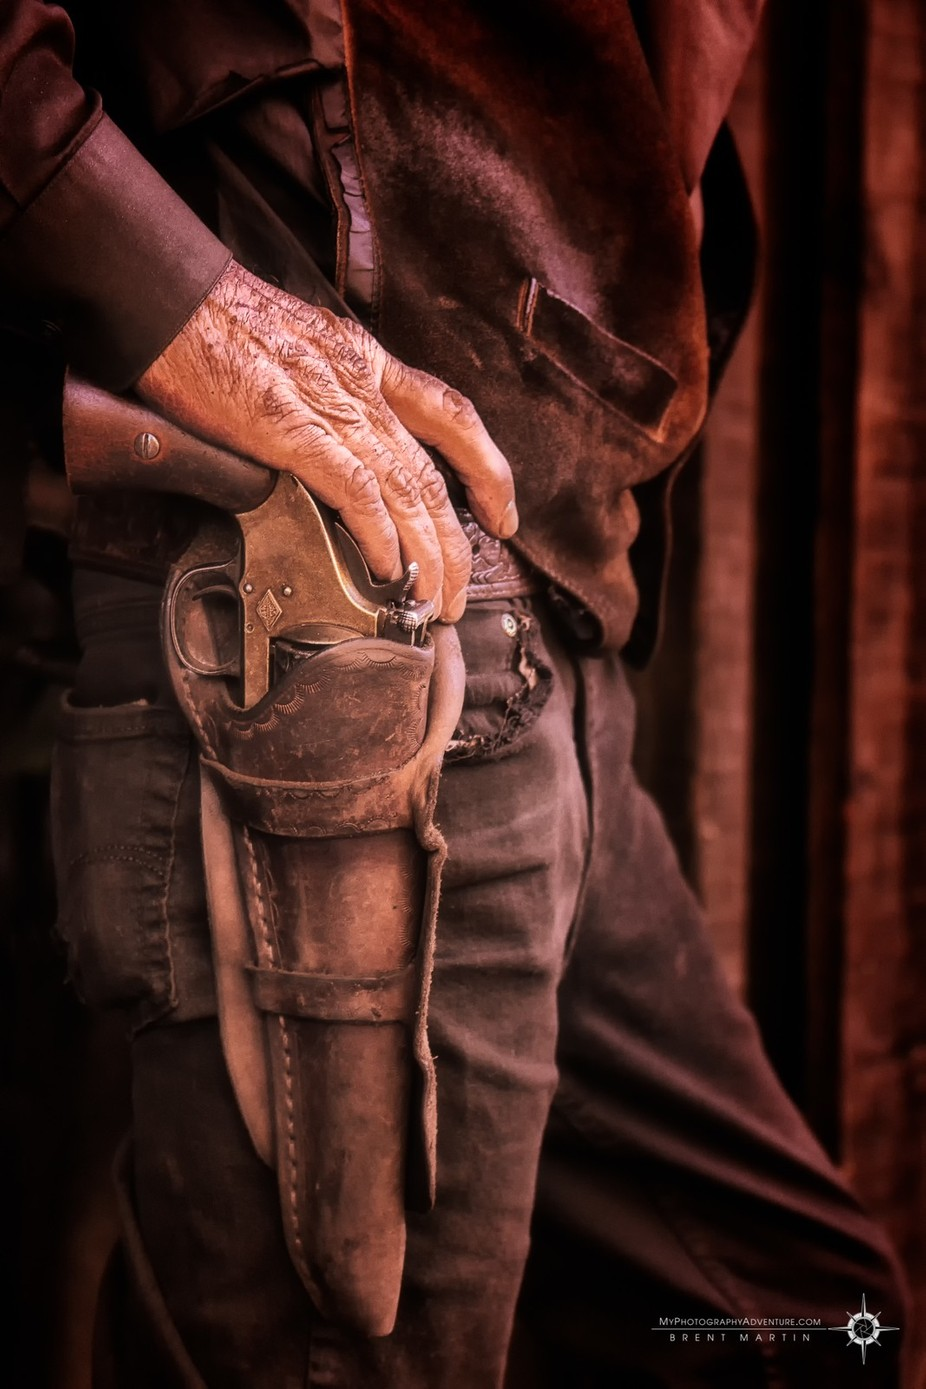 Blacksmith Security by MyPhotoAdventure - Shooting Hands Photo Contest